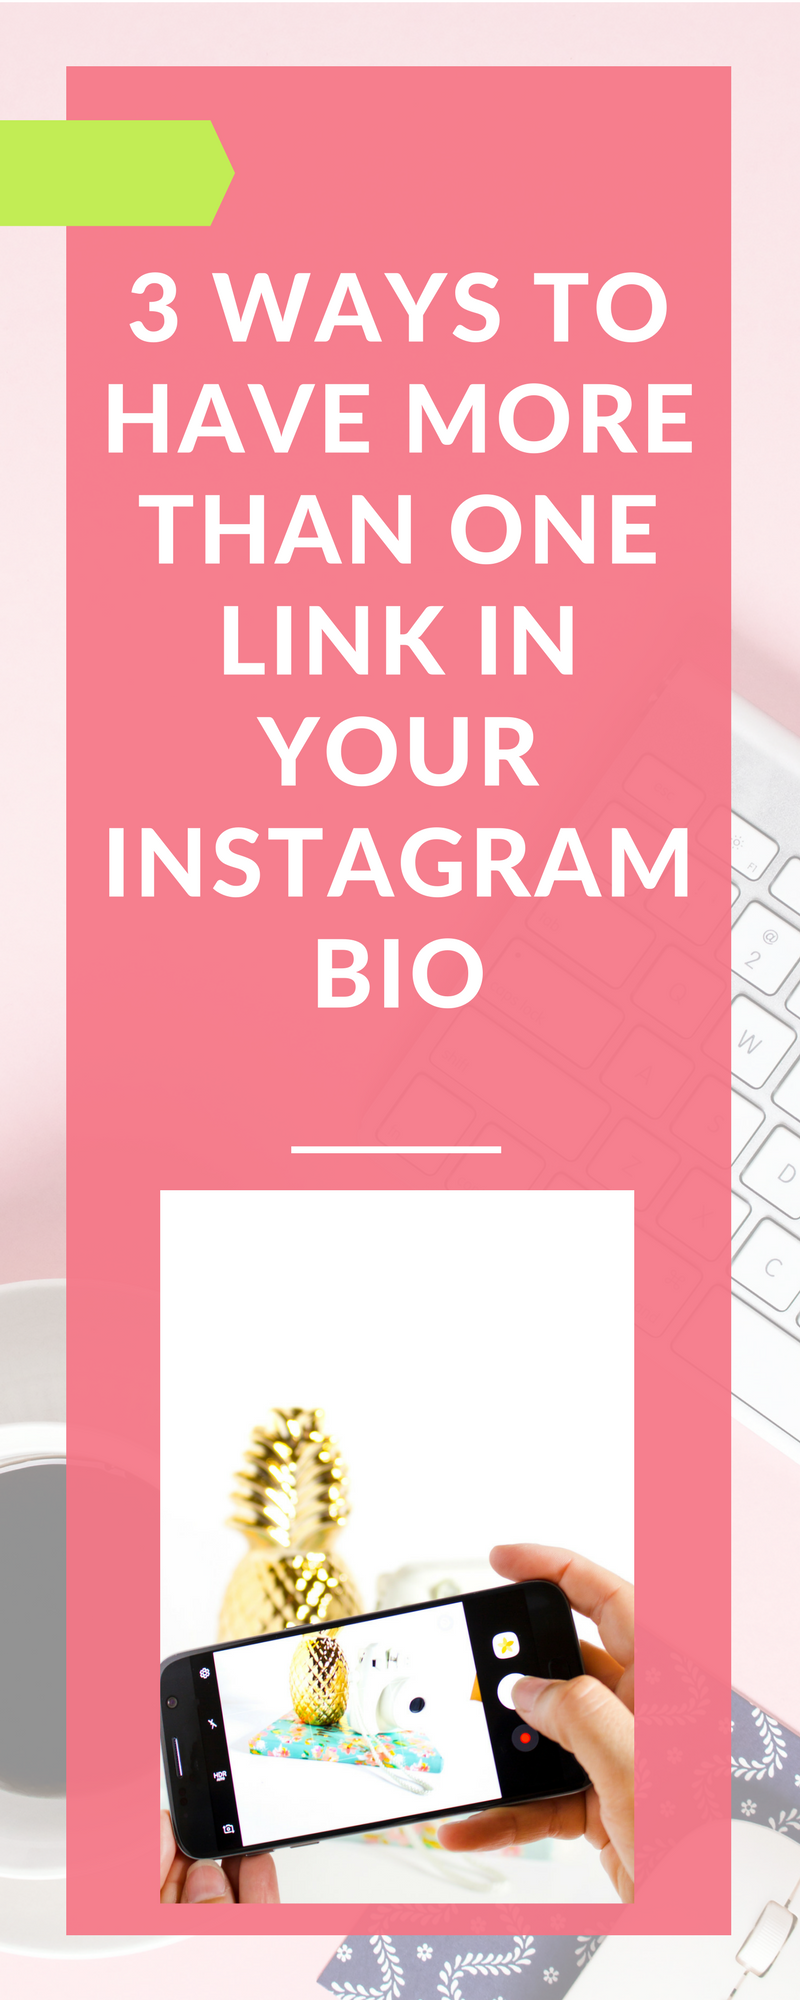 Great list of tools that let you put more than one link in your Instagram bio (which turns out is really important for wedding vendors marketing on Instagram the right way!)